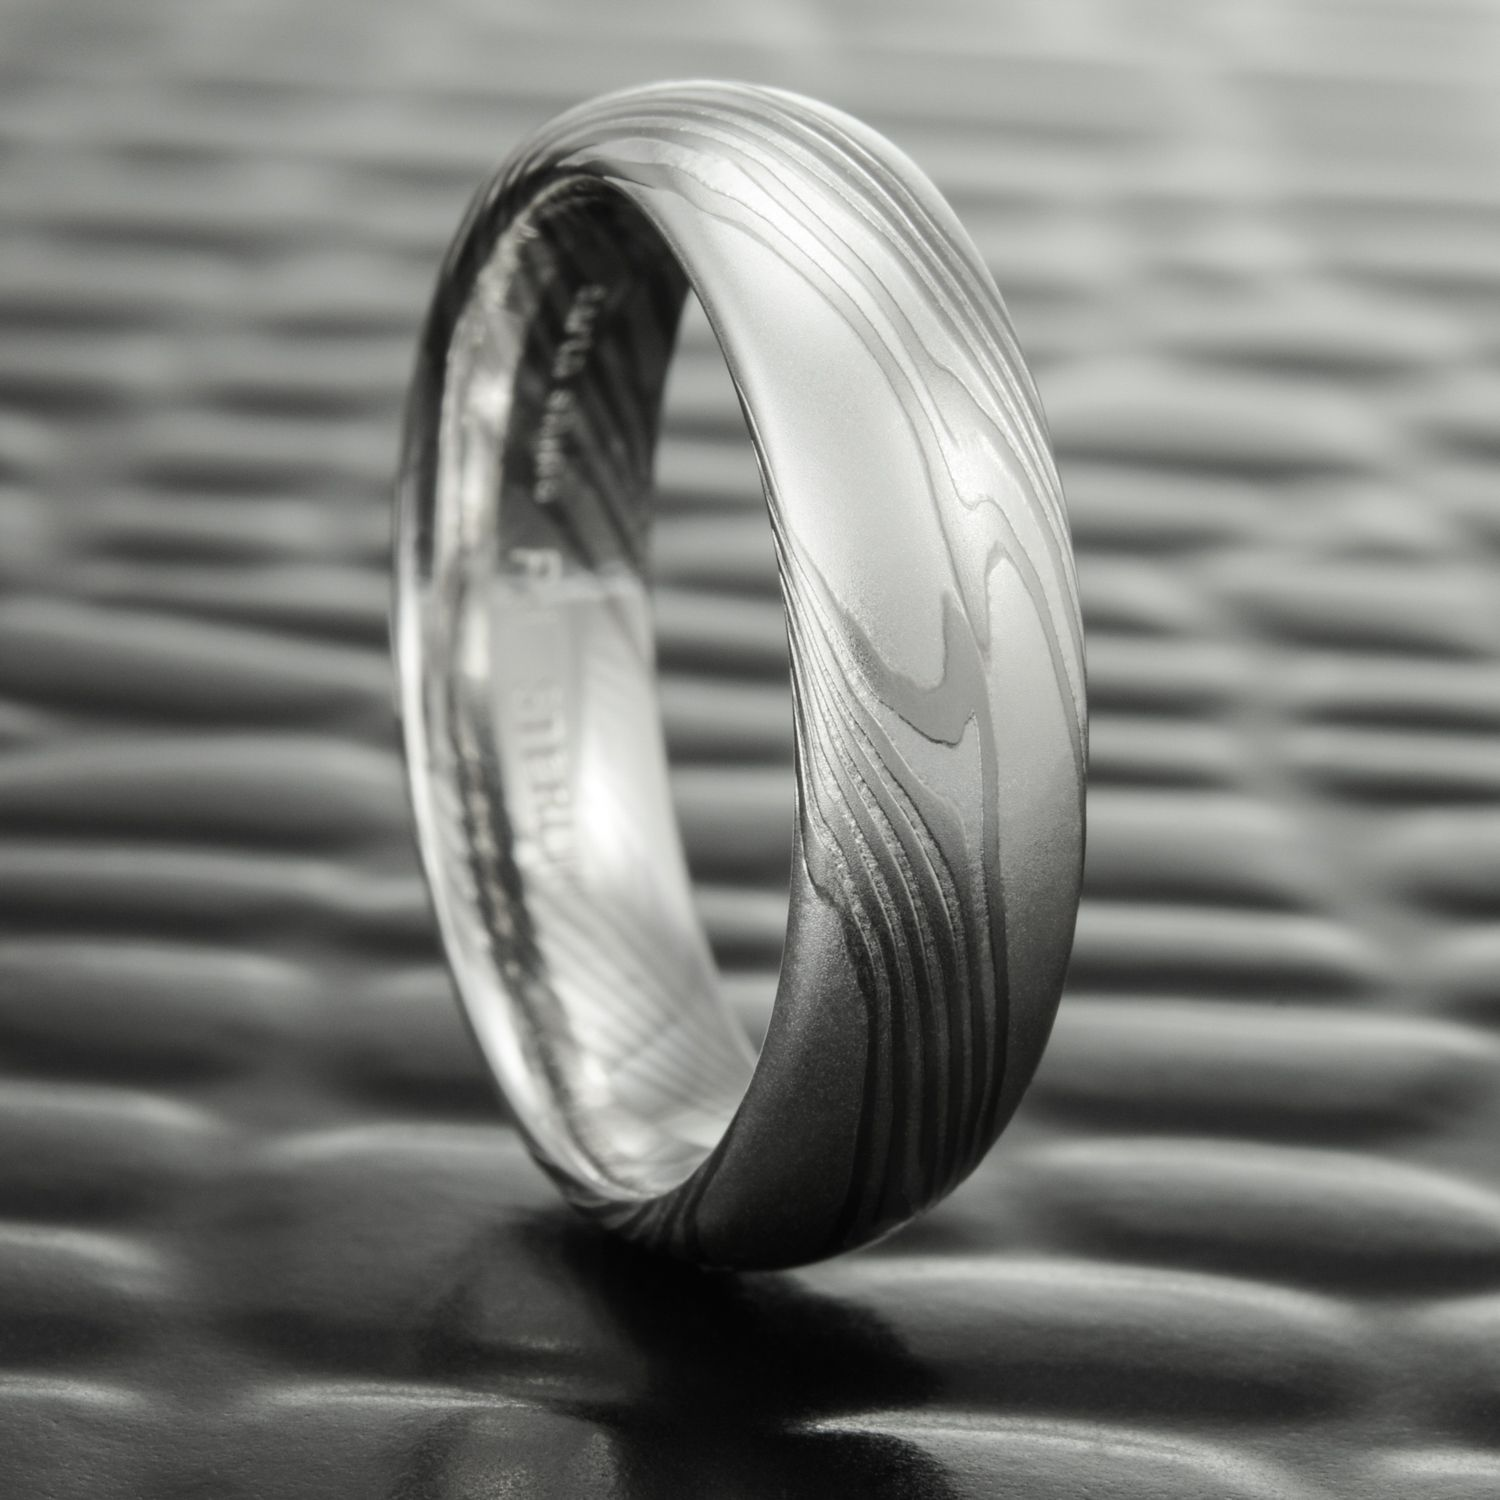 Palladium Silver Mokume Gane Wedding Bands For Men By Steven Jacob